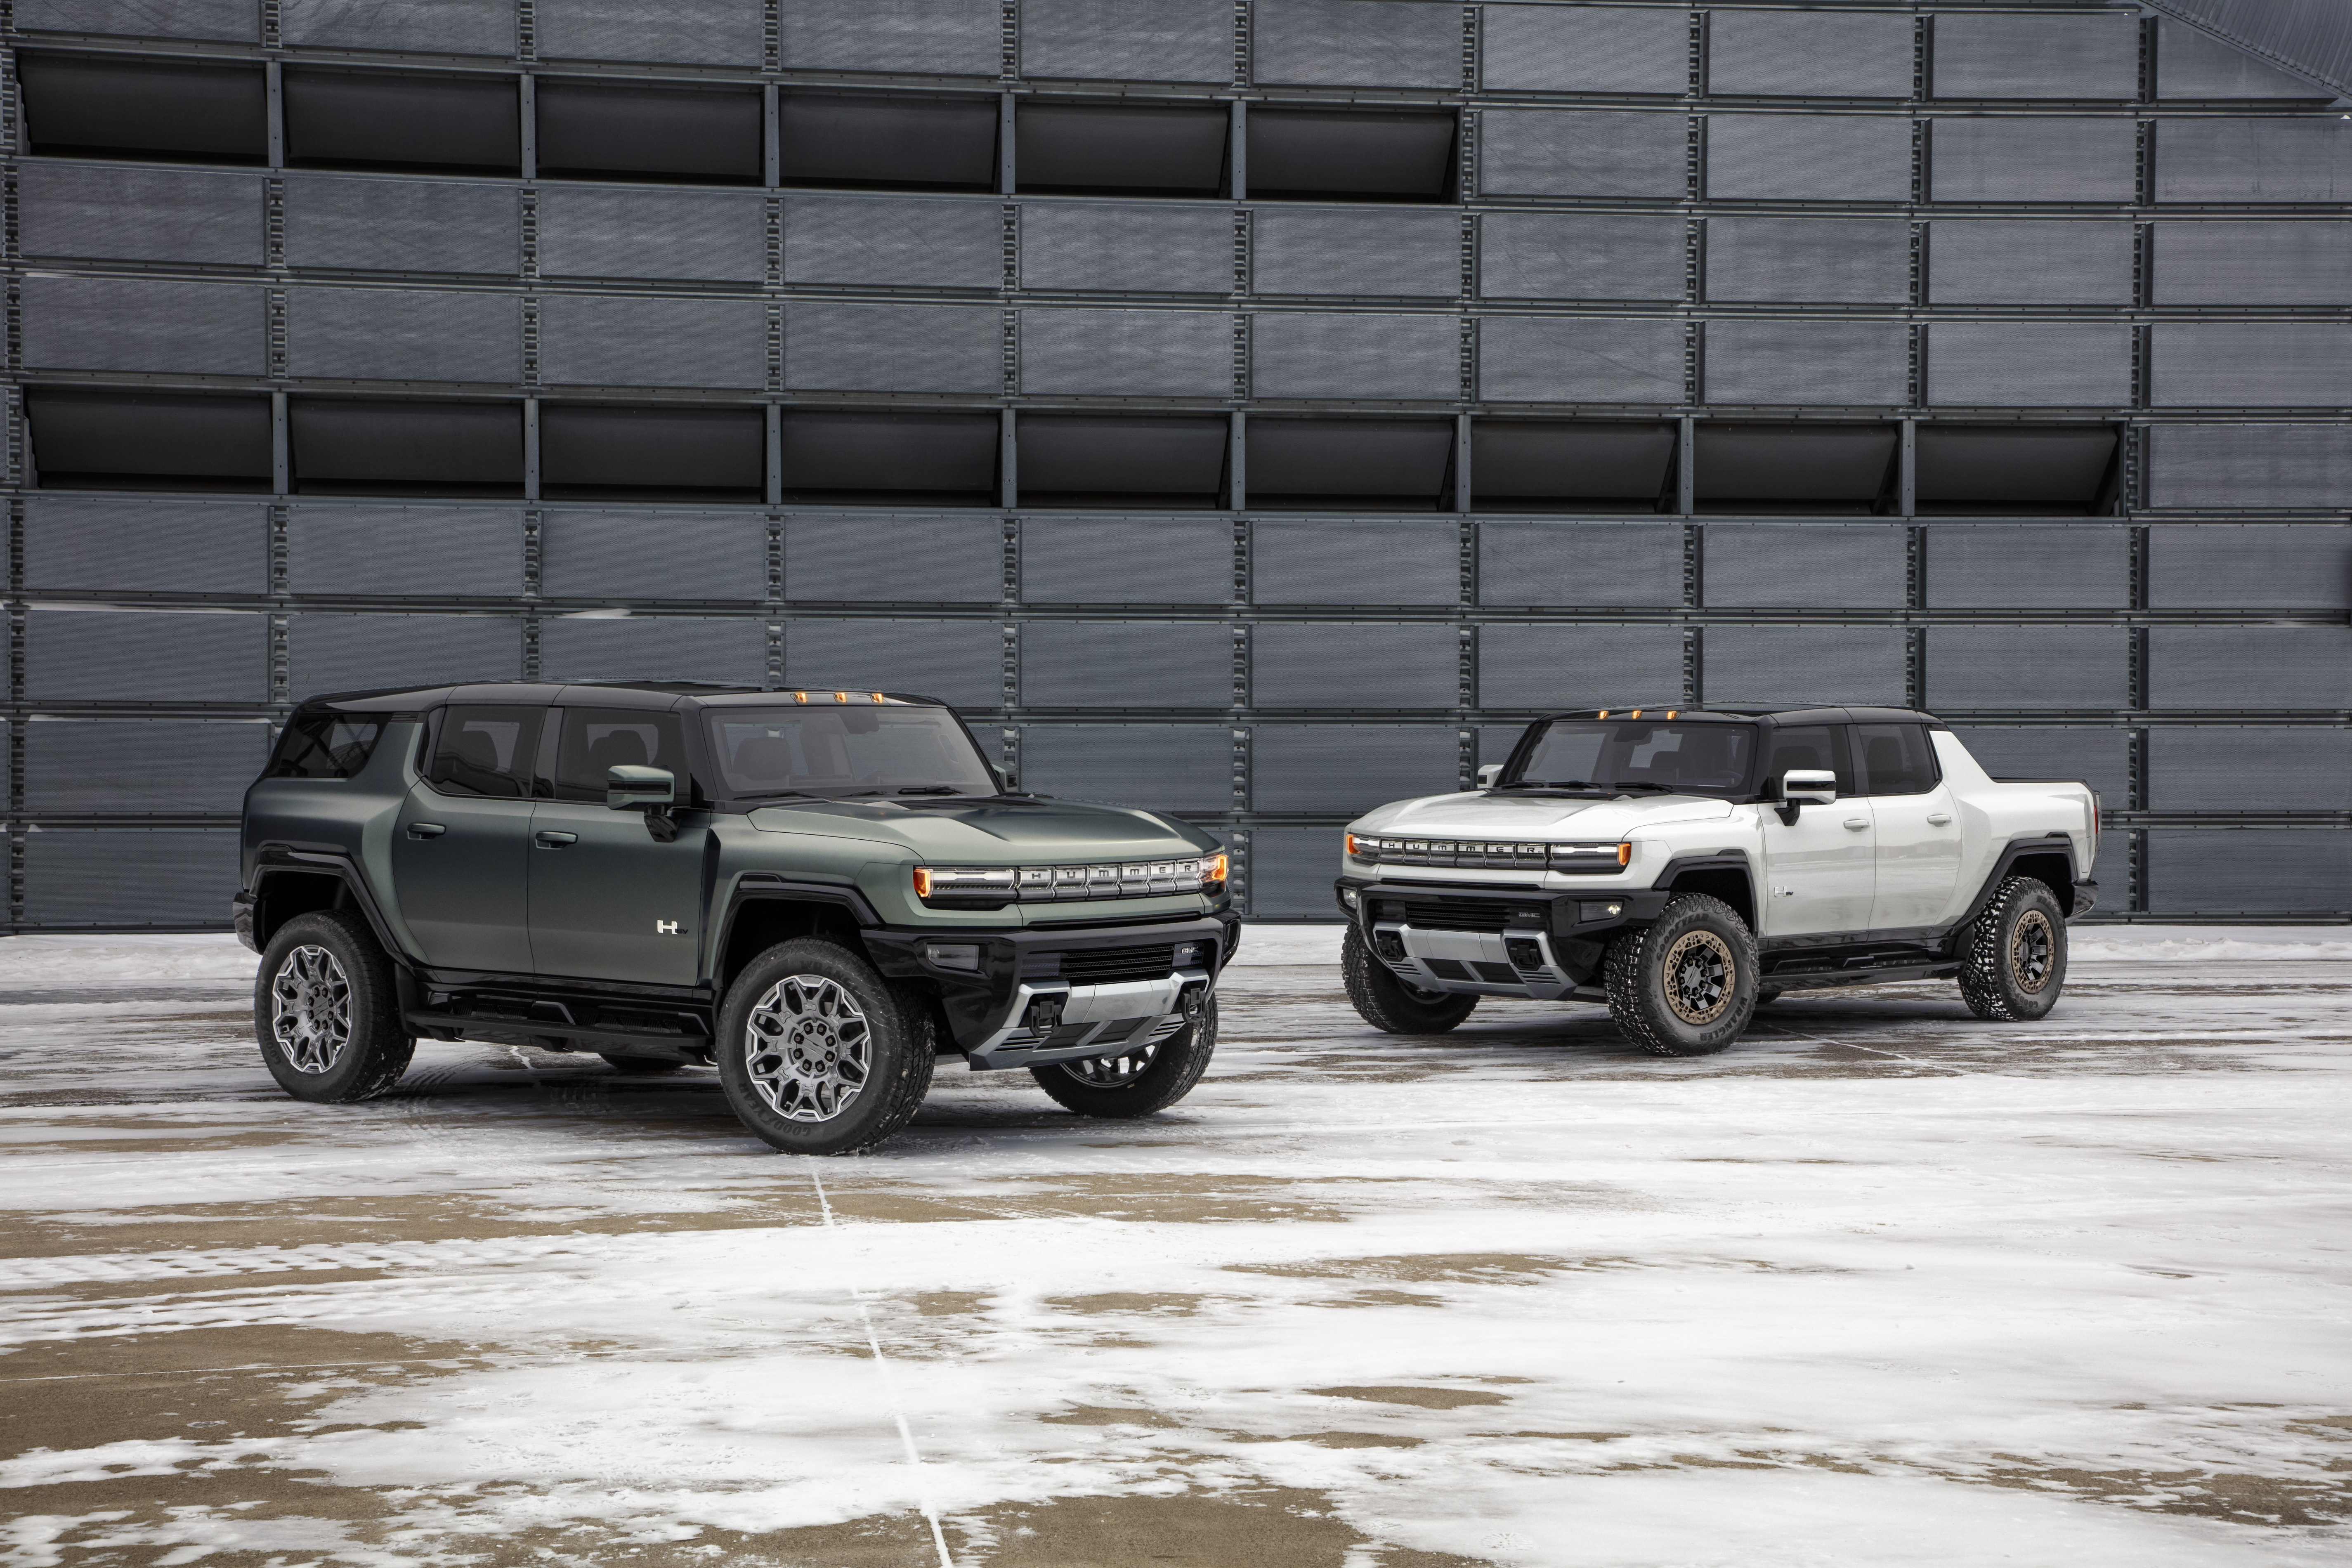 GMC unveiled the production-ready Hummer EV Pickup and new SUV while continuing to emphasize tech and off-road cred